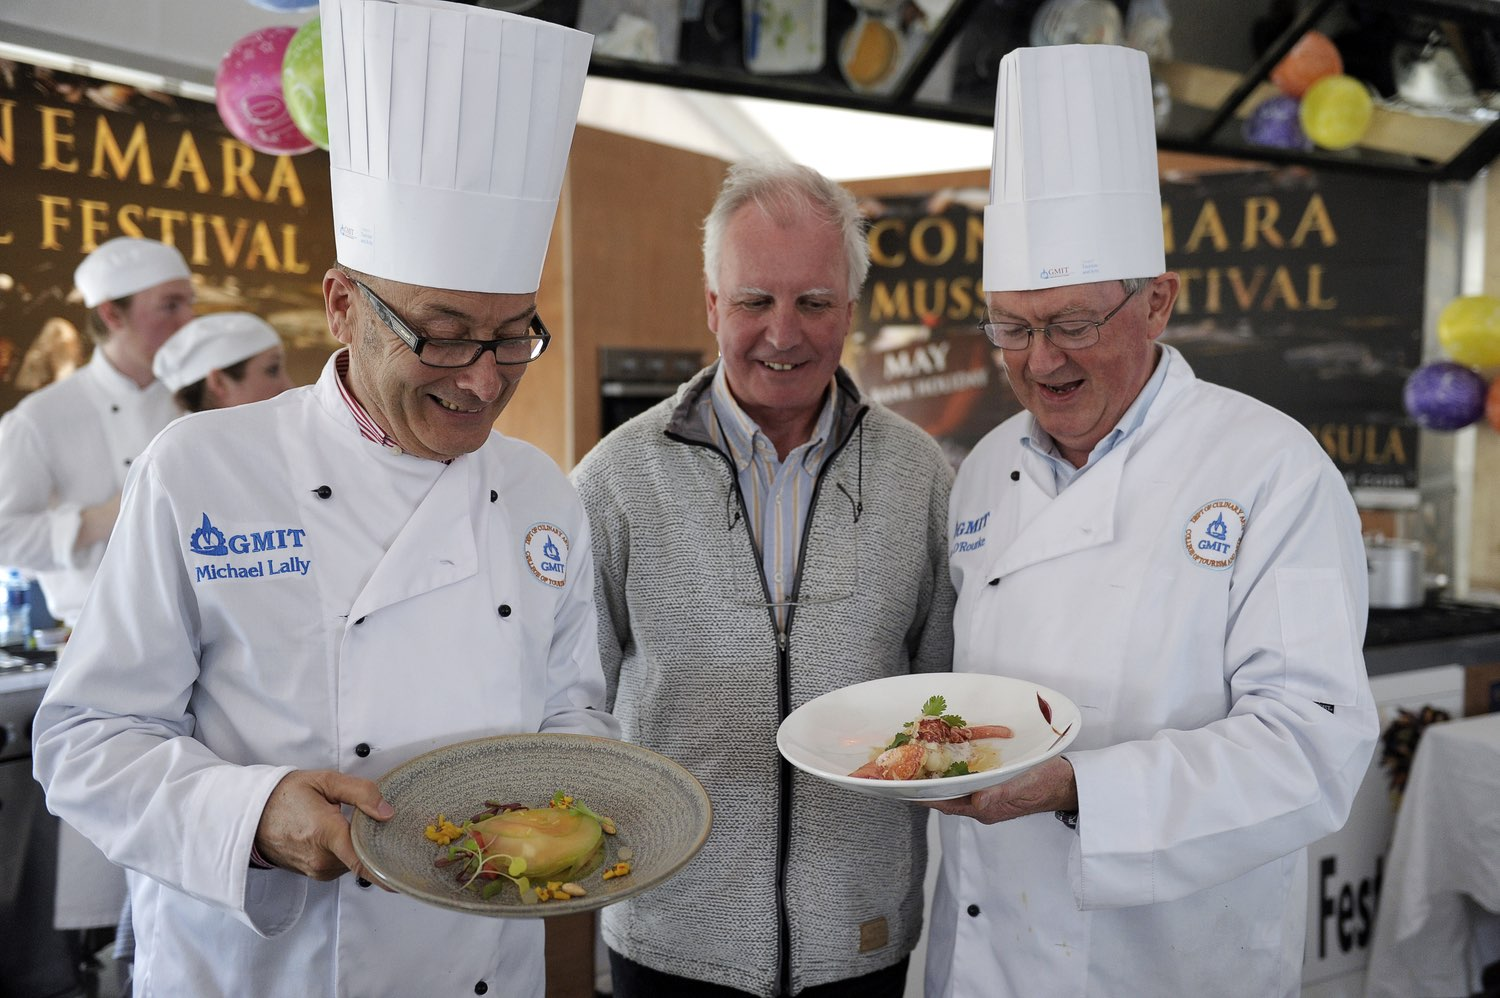 Festival Chefs presenting their dishes